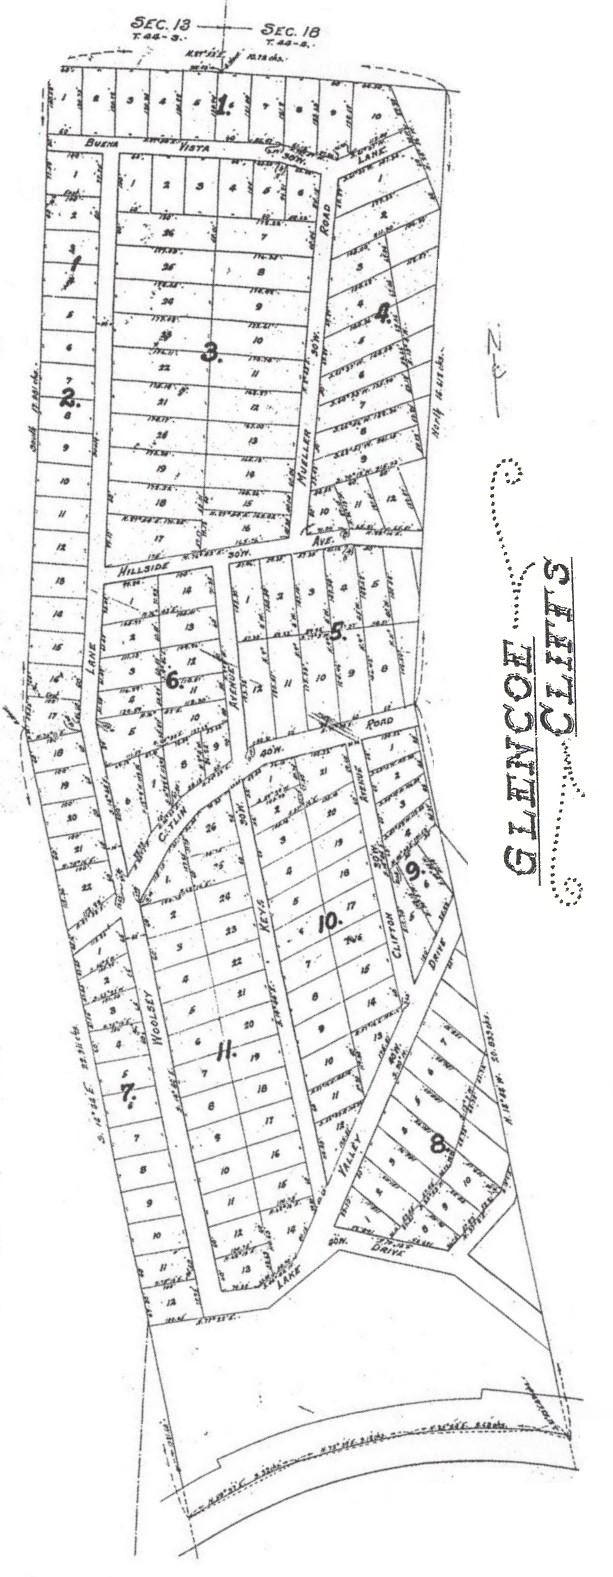 Image of Historic Map of Glencoe Cliffs Subdivision